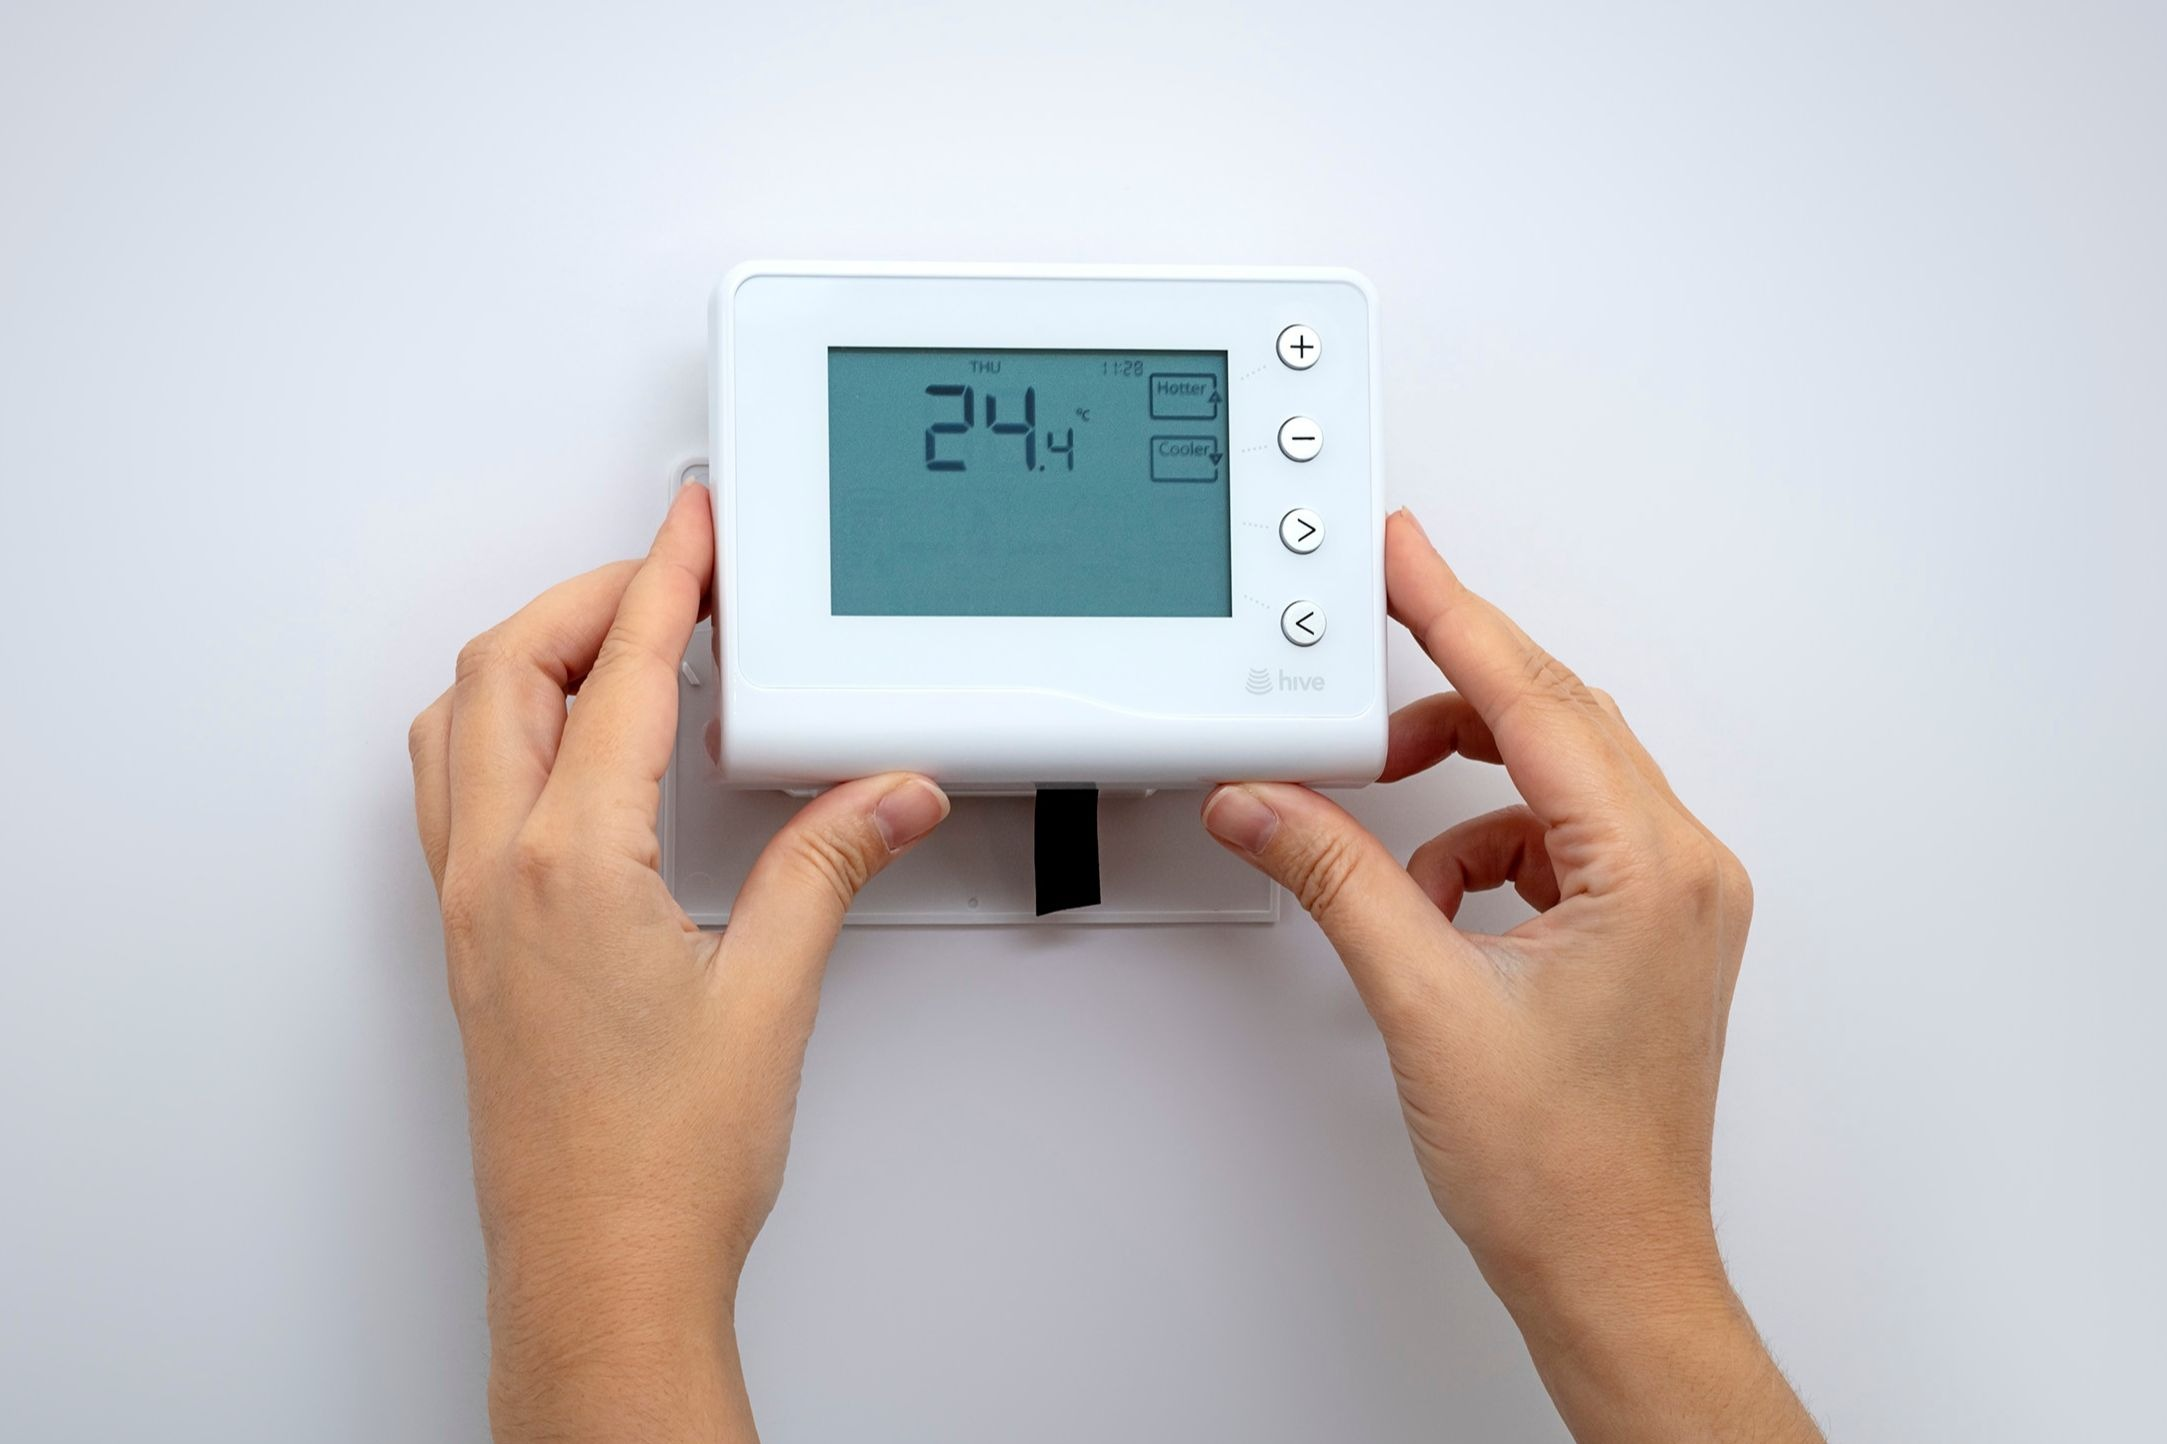 What to do if your Hive Thermostat has a 'No RF' message on the display